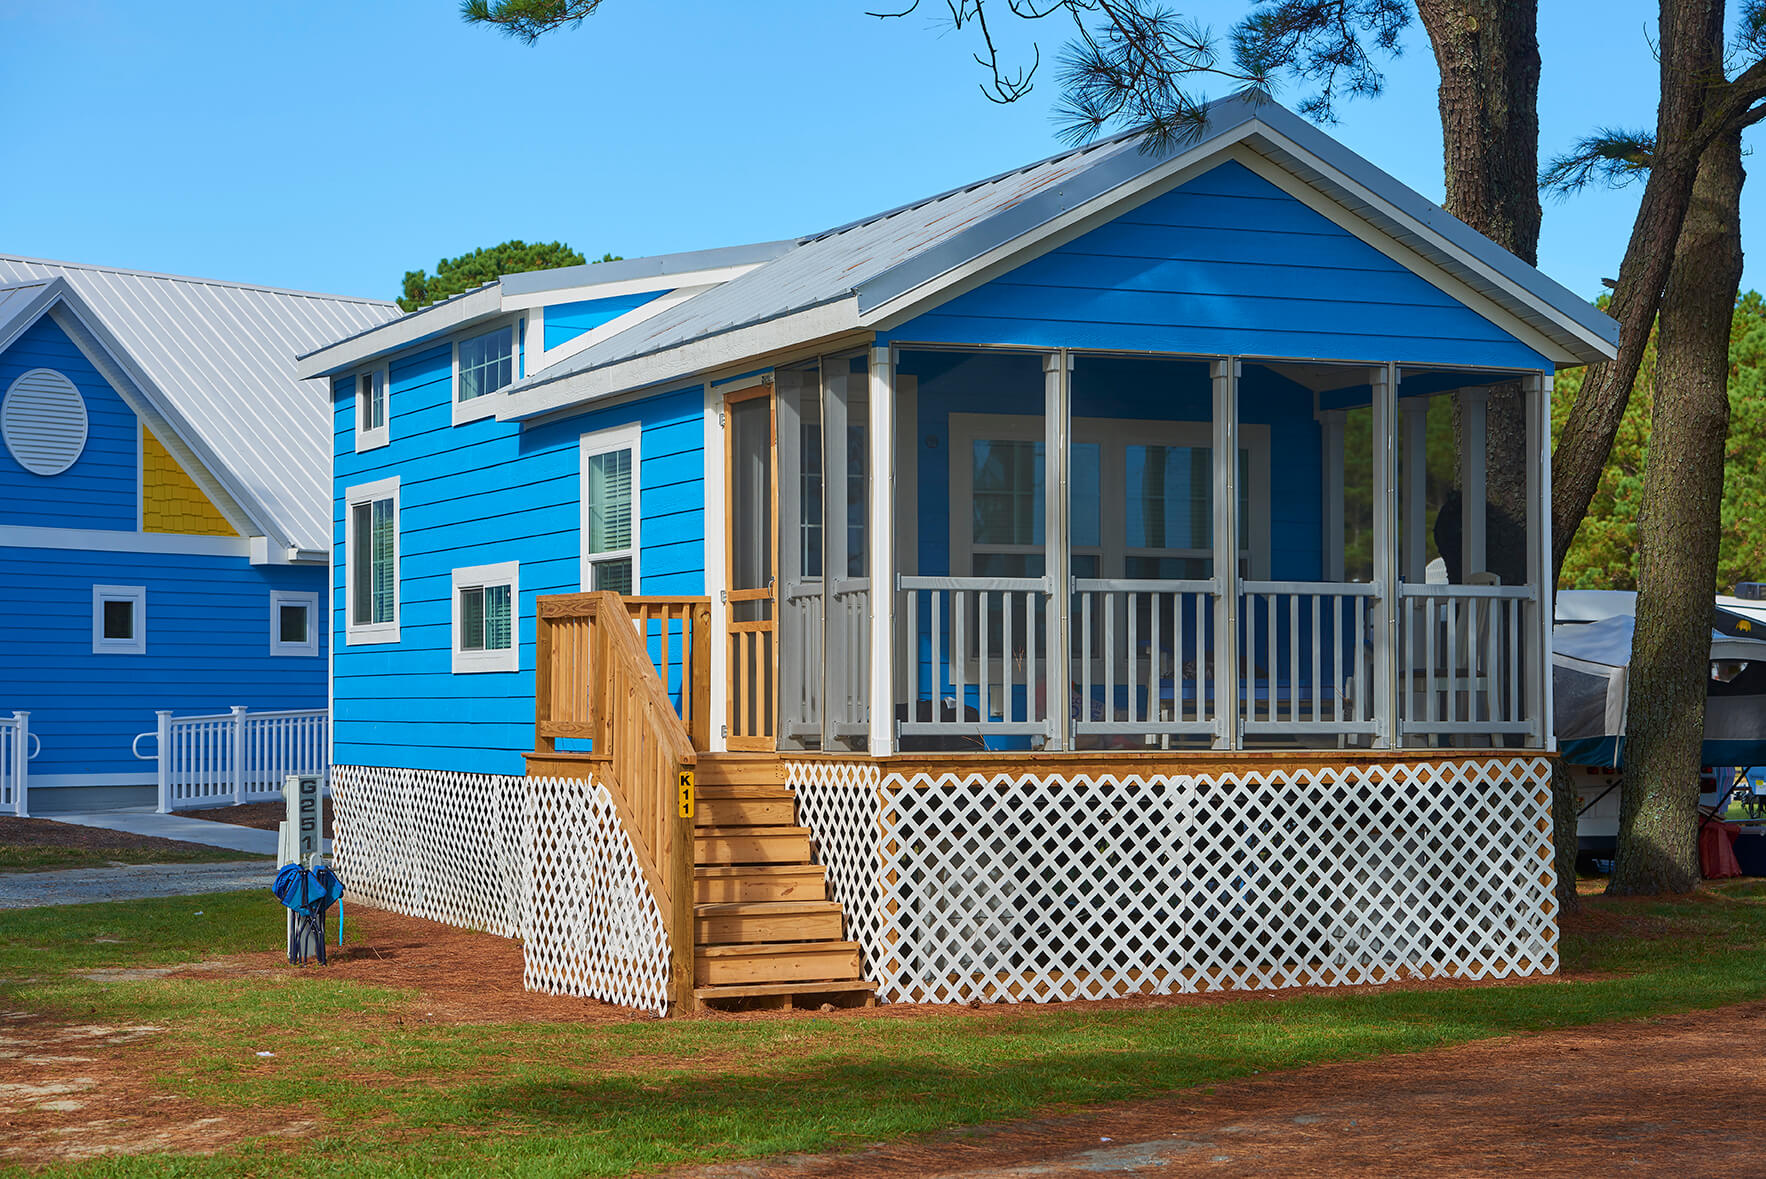 island bungalow Chincoteague Island KOA